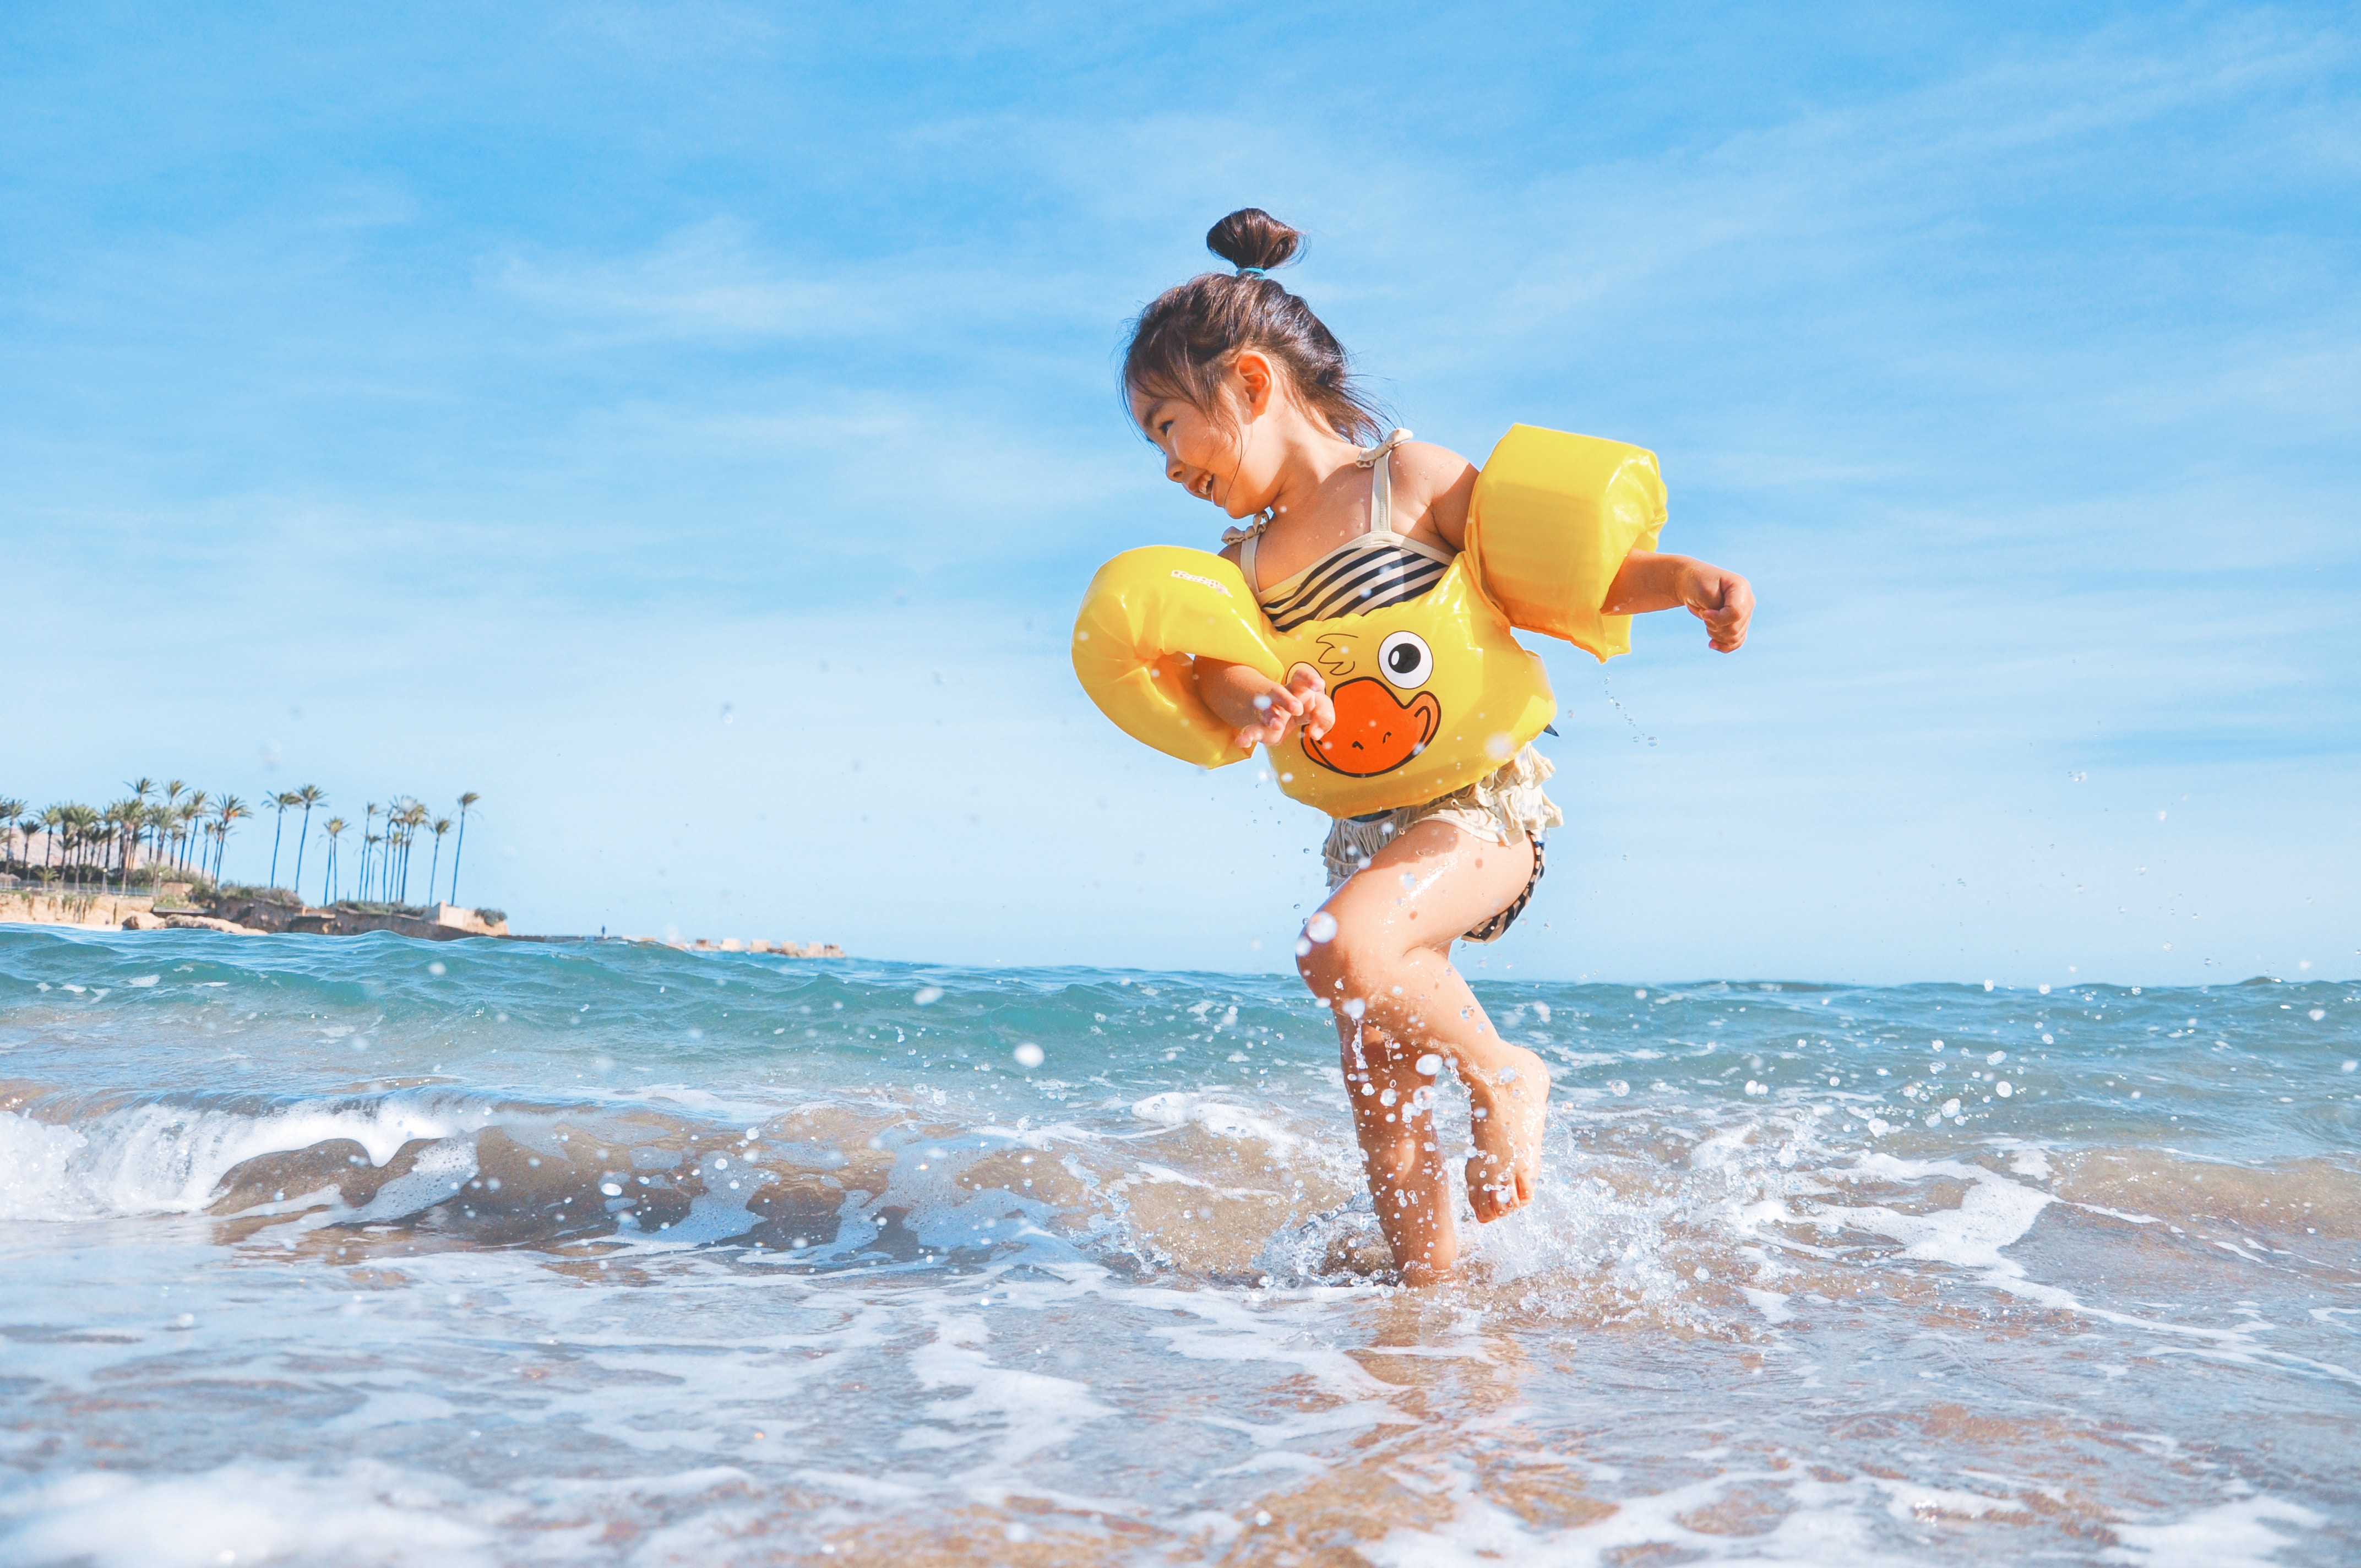 Little girl laughing while running in ocean waves